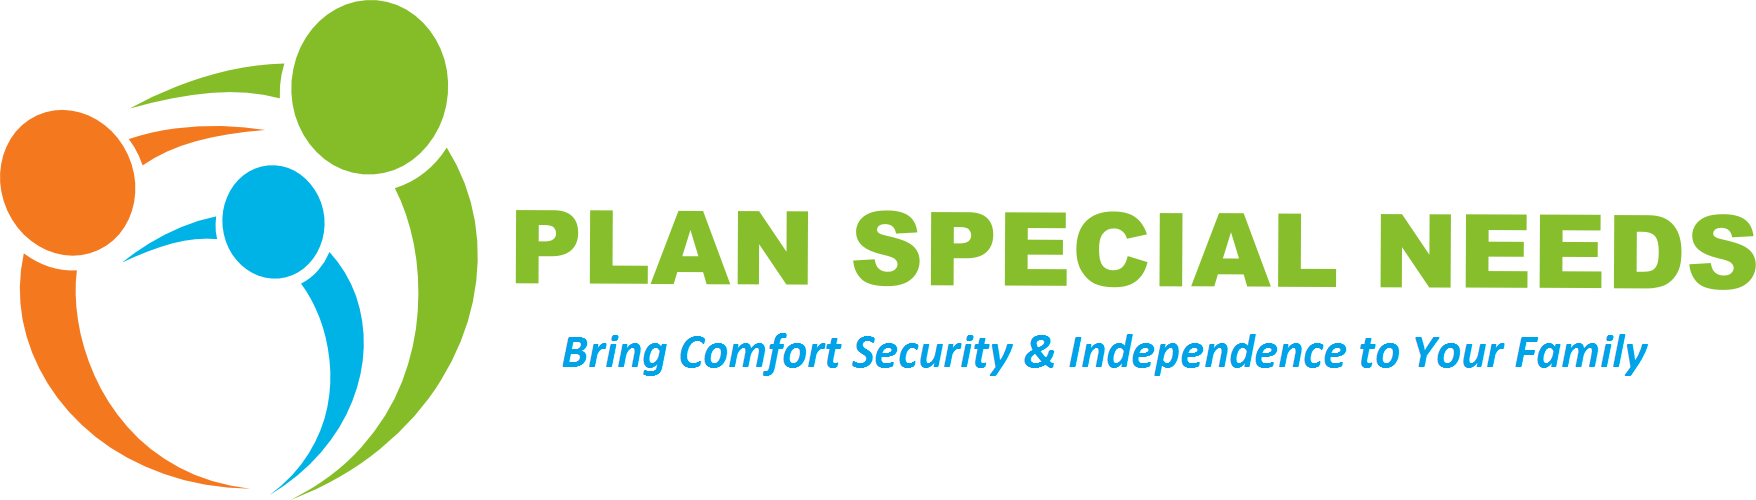 Plan Special Needs